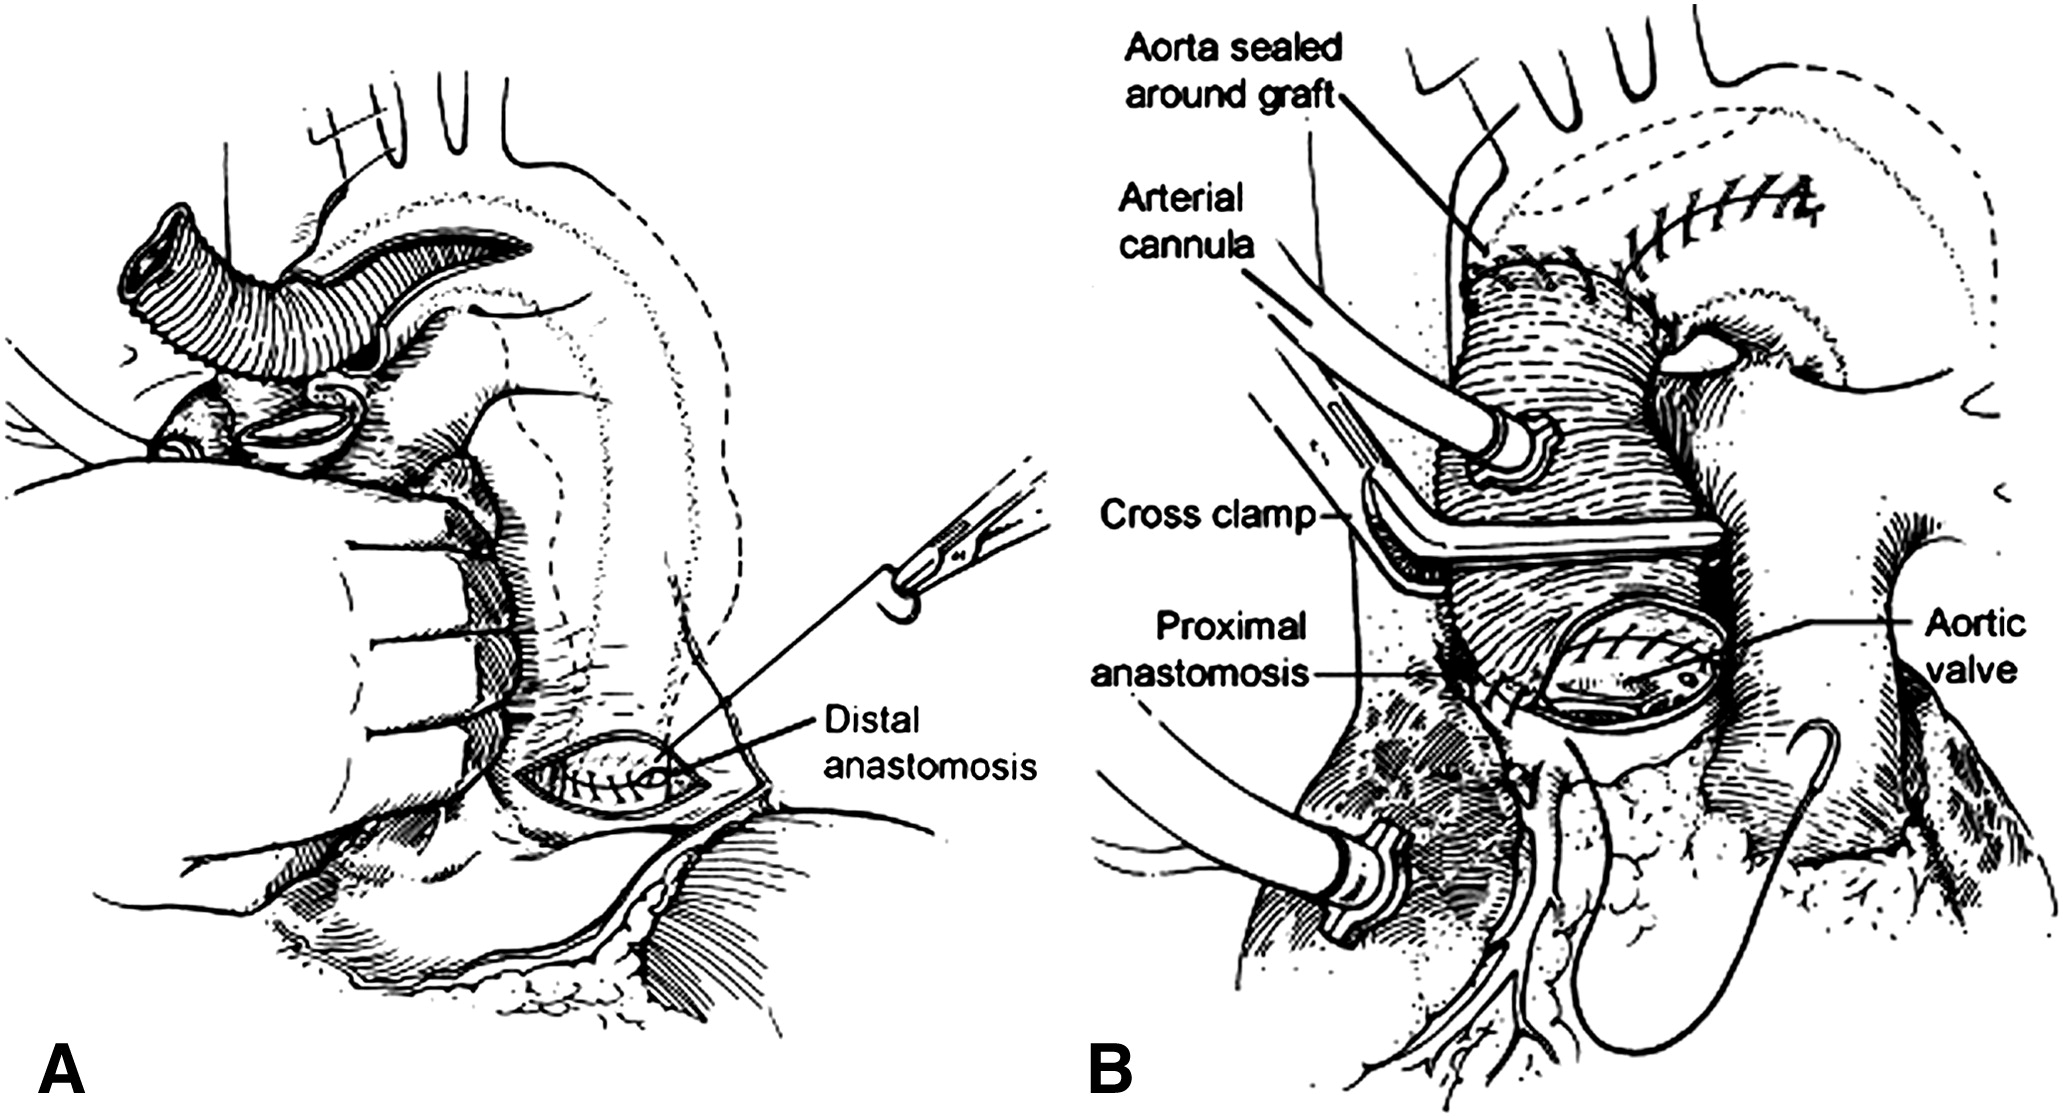 Evolution in the management of the total thoracic aorta